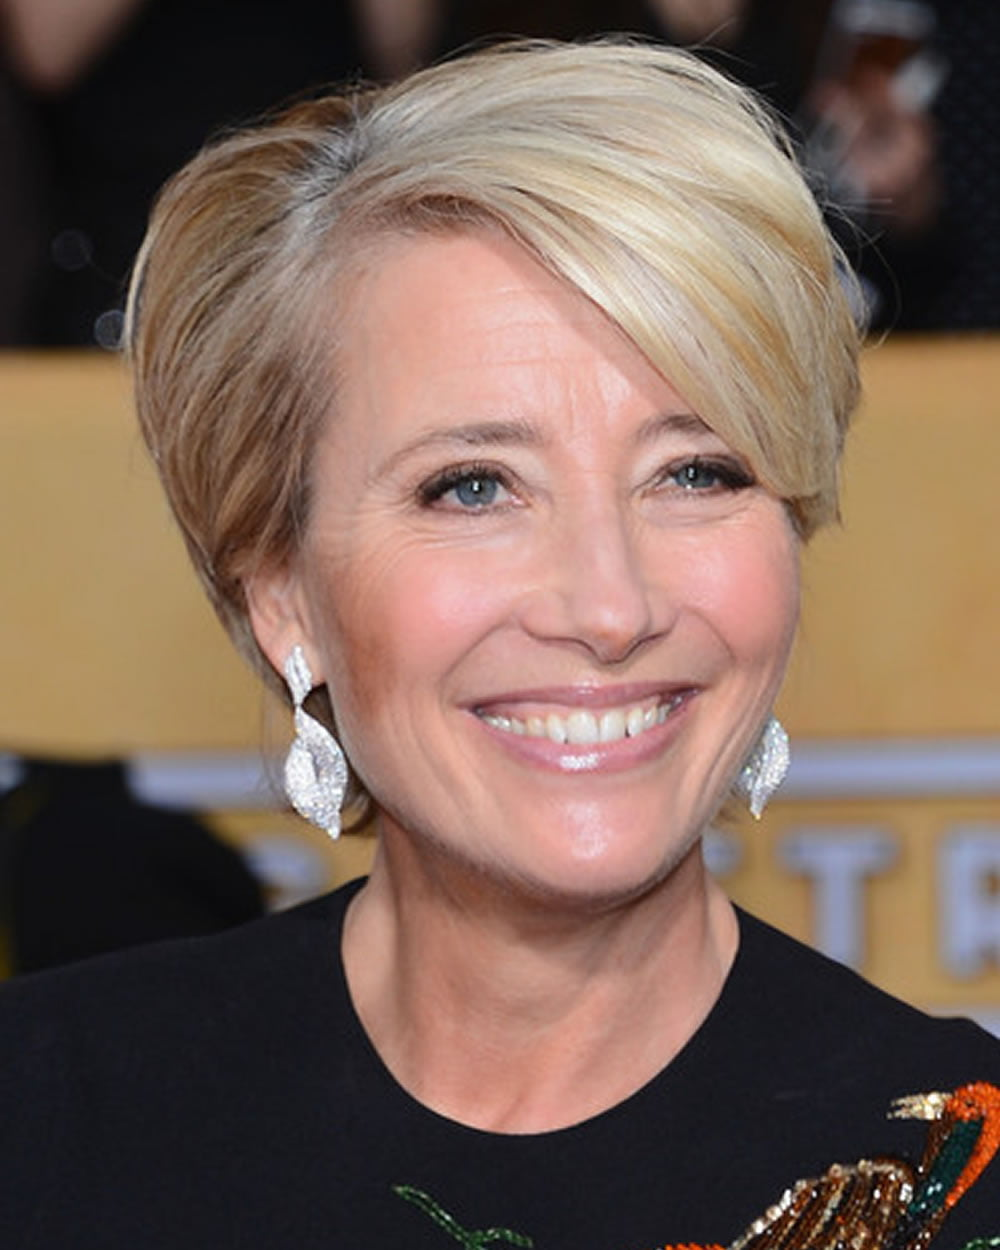 Haircuts For Women 60 Years Old: 2018 Short Haircuts For Older Women Over 50 To 60 Years